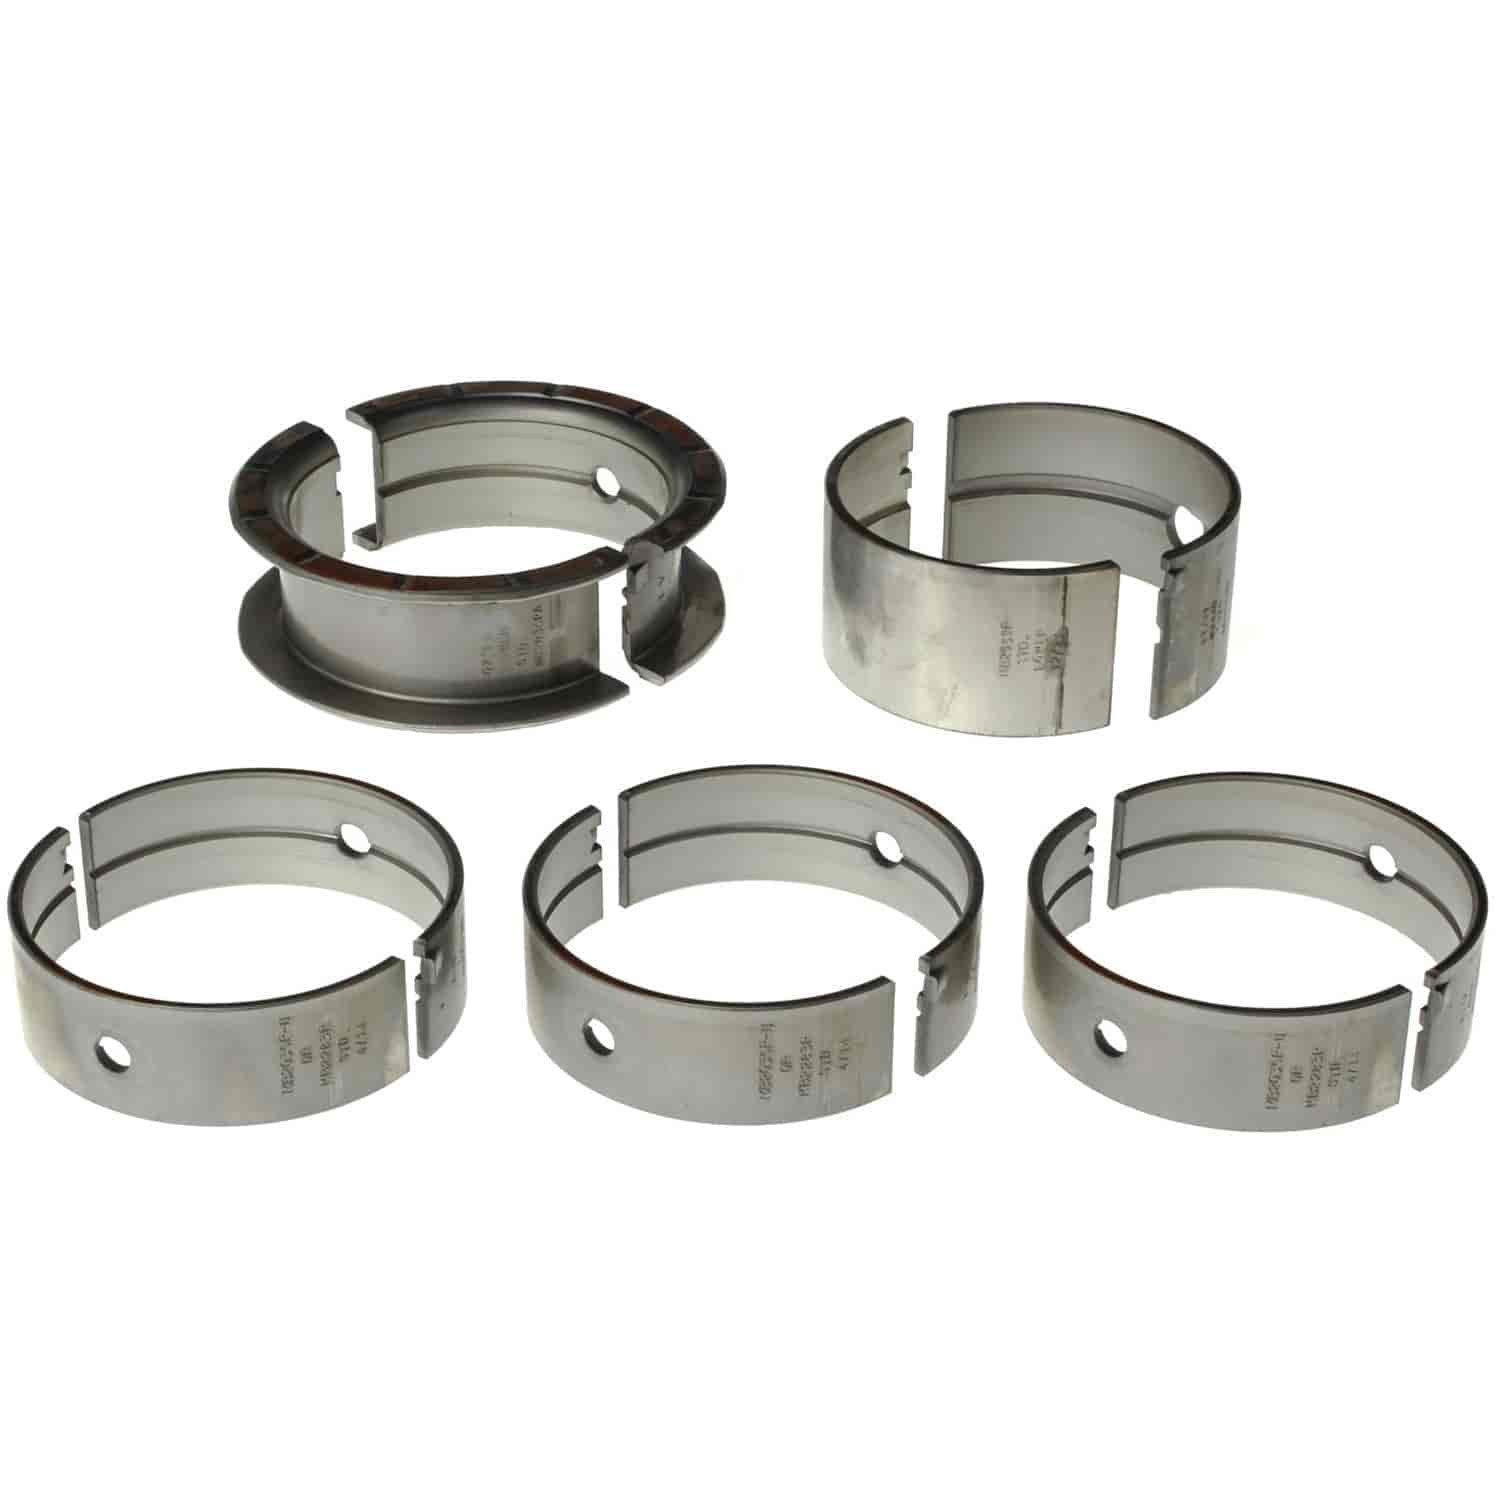 Clevite MS-540P-10 Engine Crankshaft Main Bearing Set